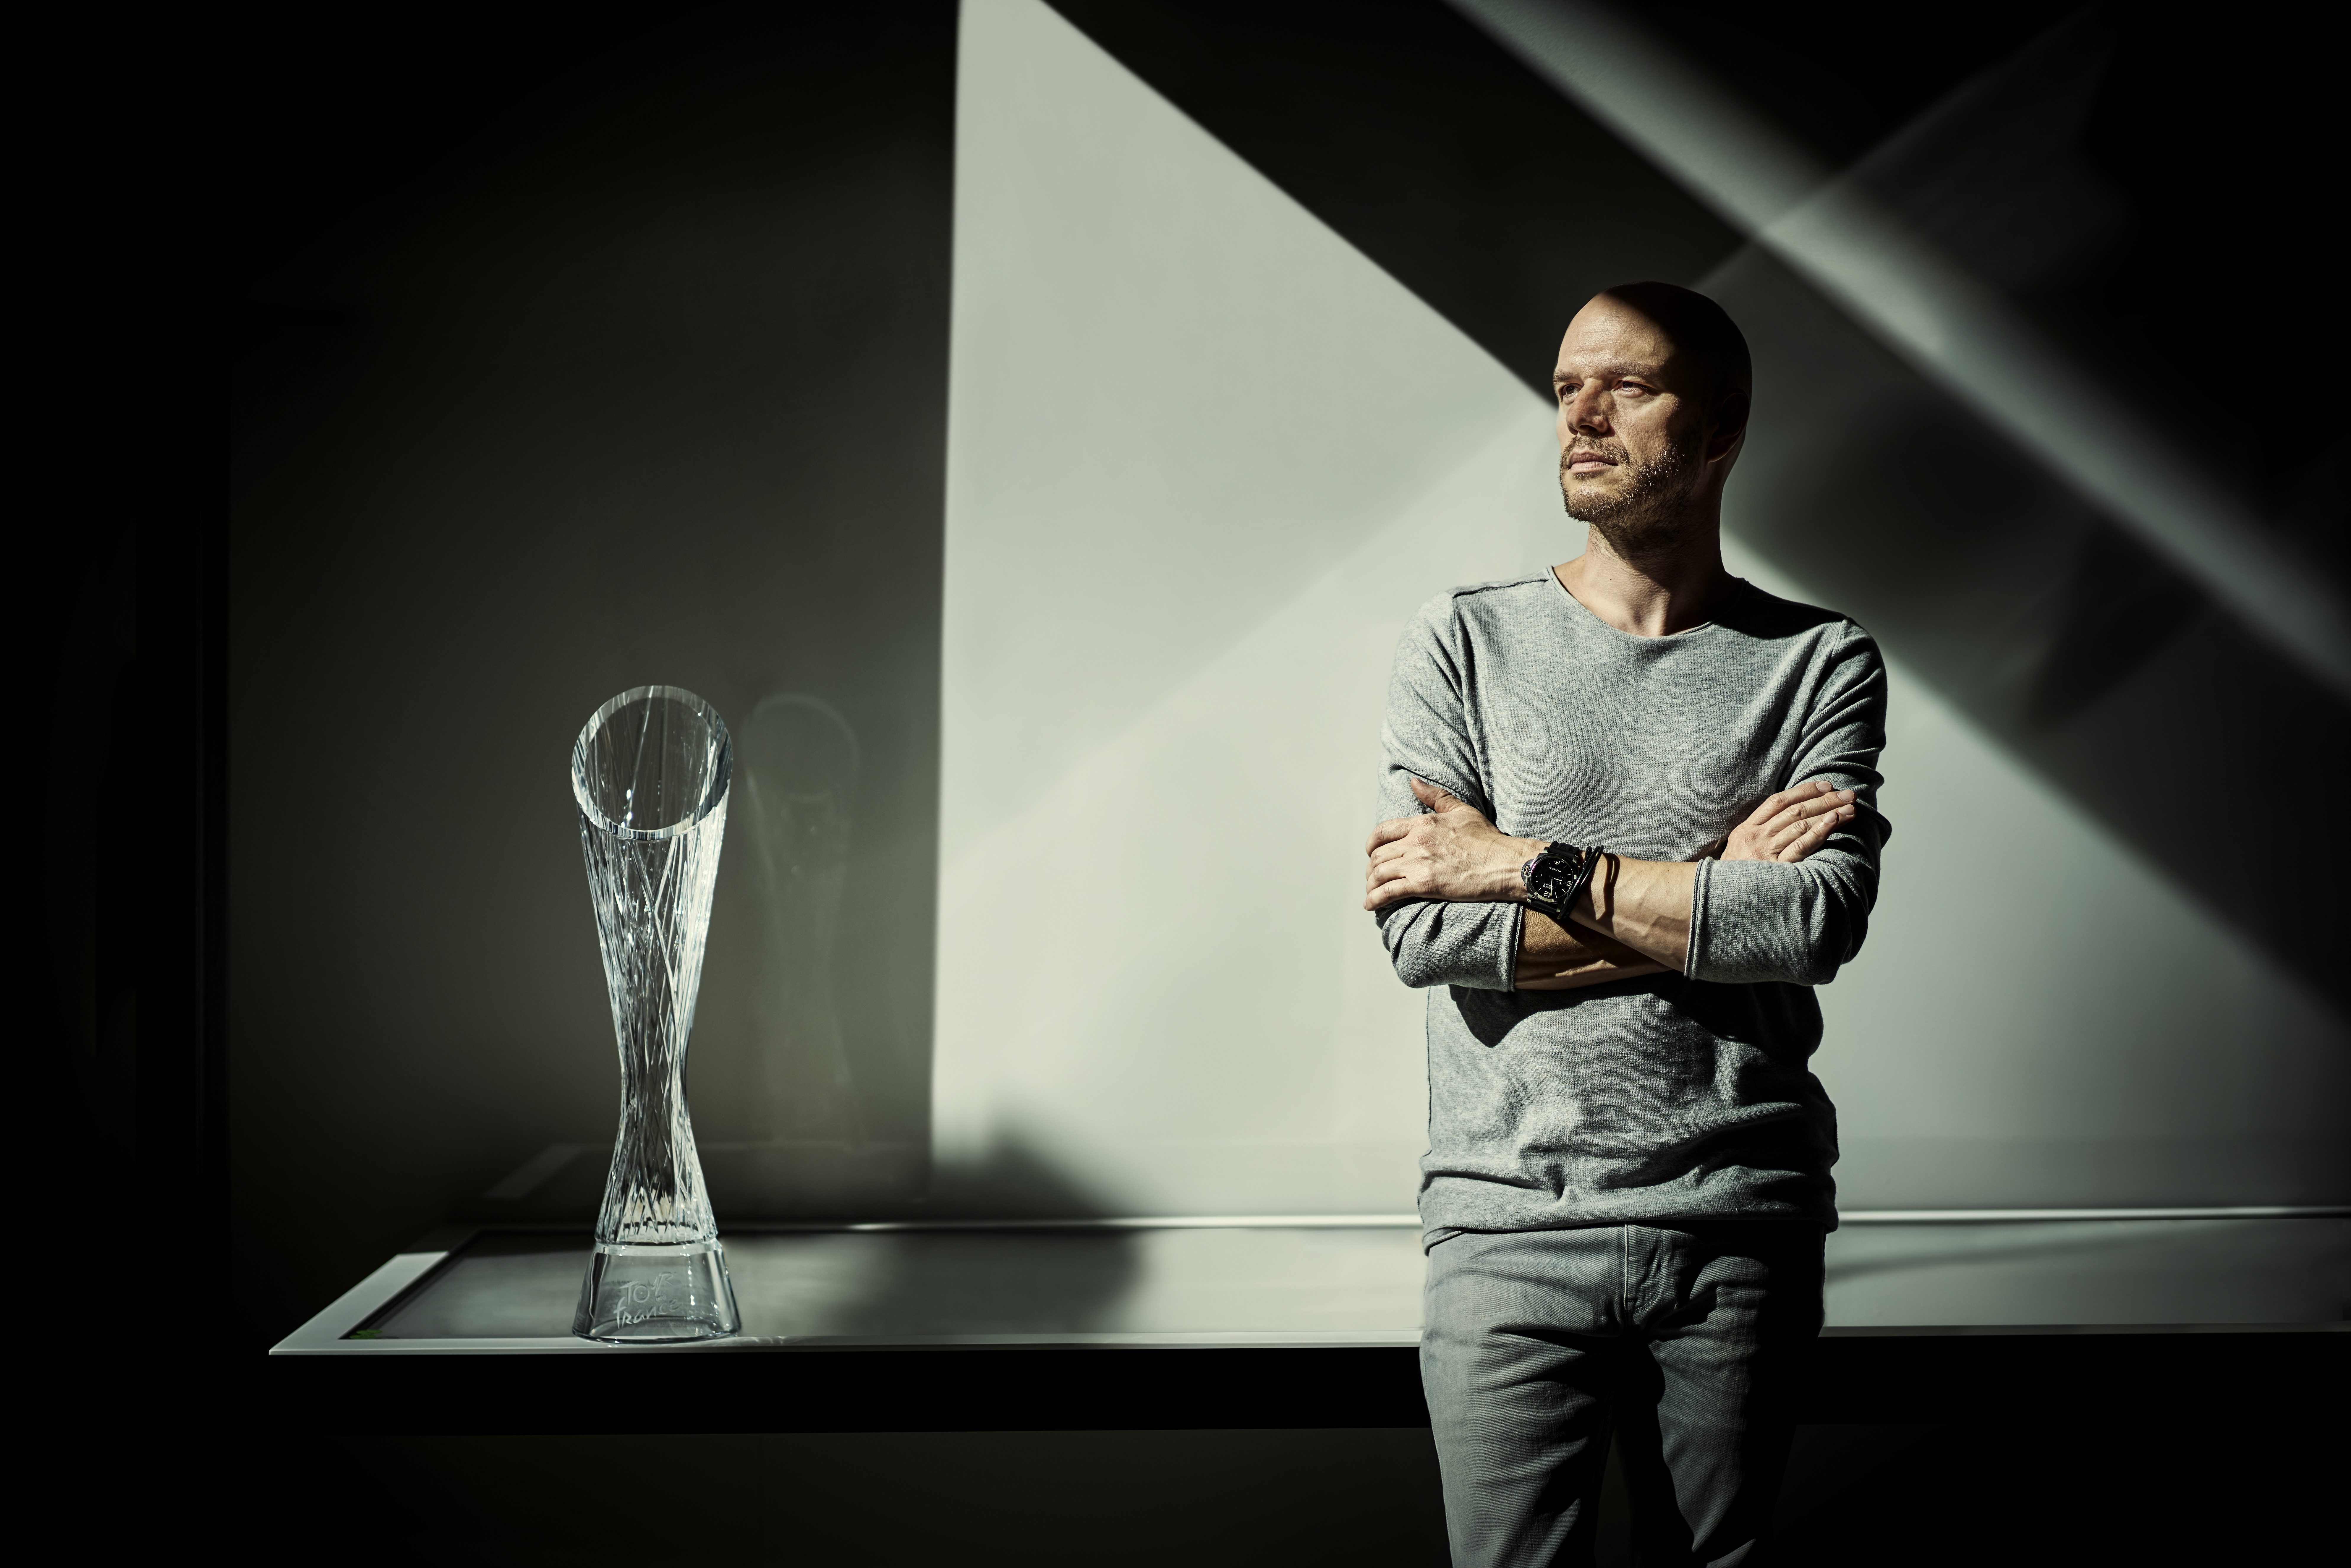 SKODA Design creates trophies for the winners of the Tour de France 2021 - Image 1